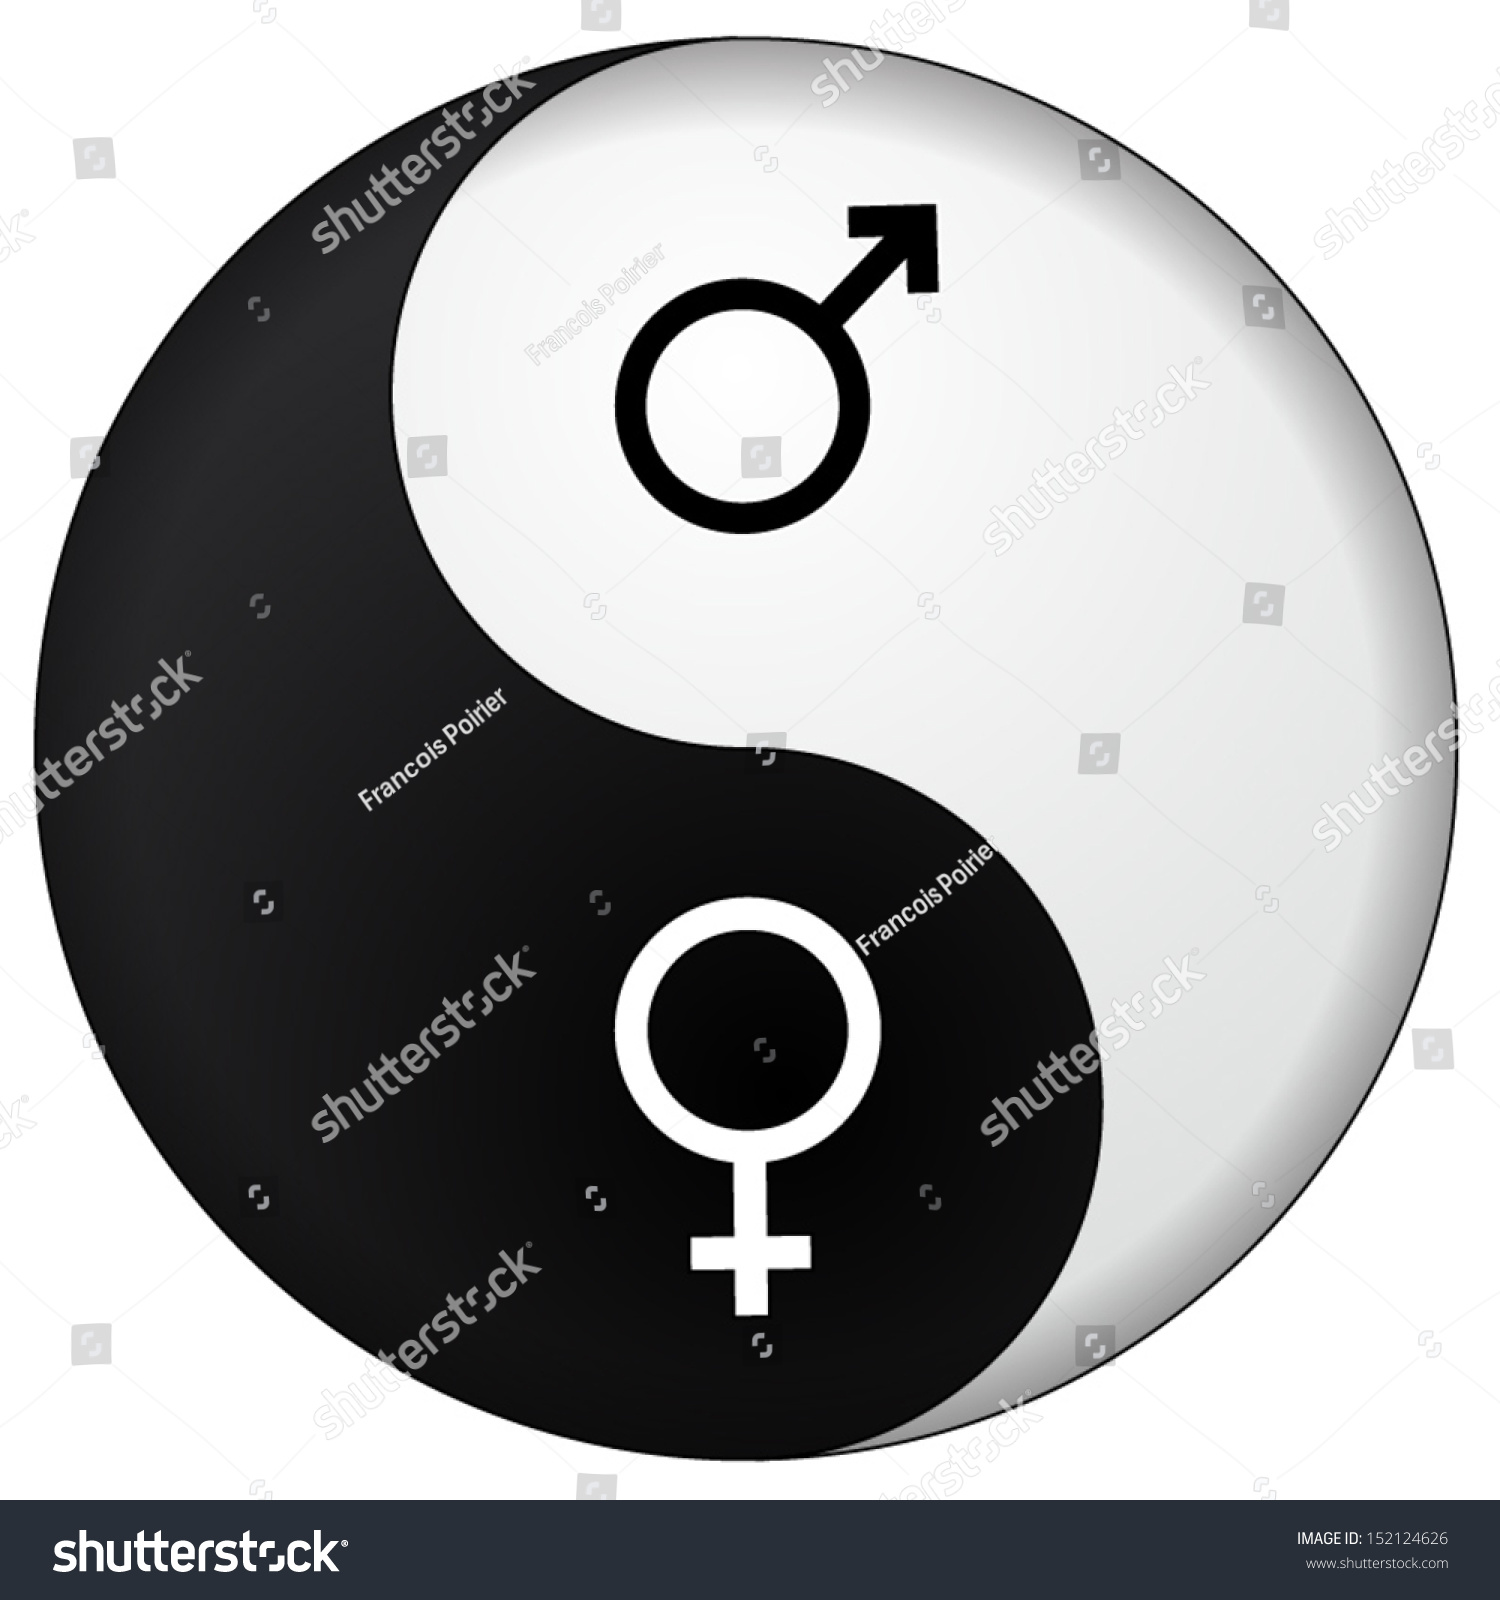 Yin yang male female stock vector 152124626 shutterstock yin yang male female biocorpaavc